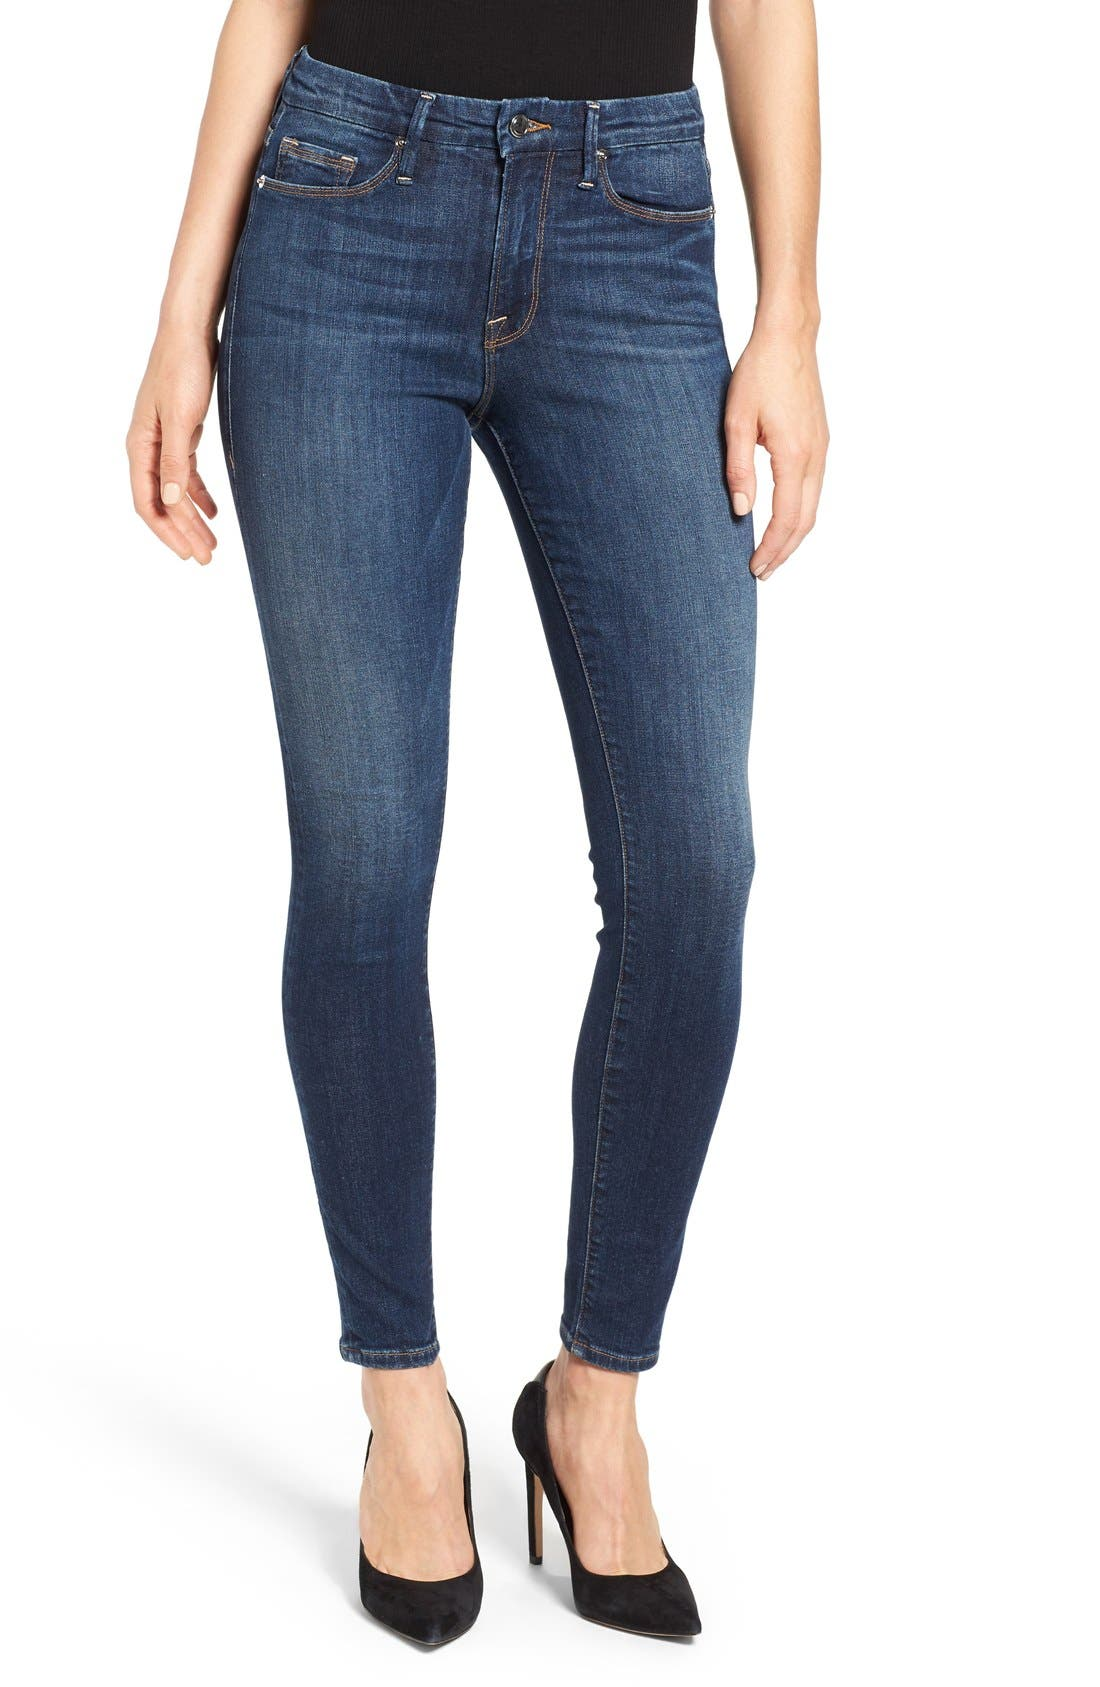 Main Image - Good American Good Legs High Rise Skinny Jeans (Blue 004)